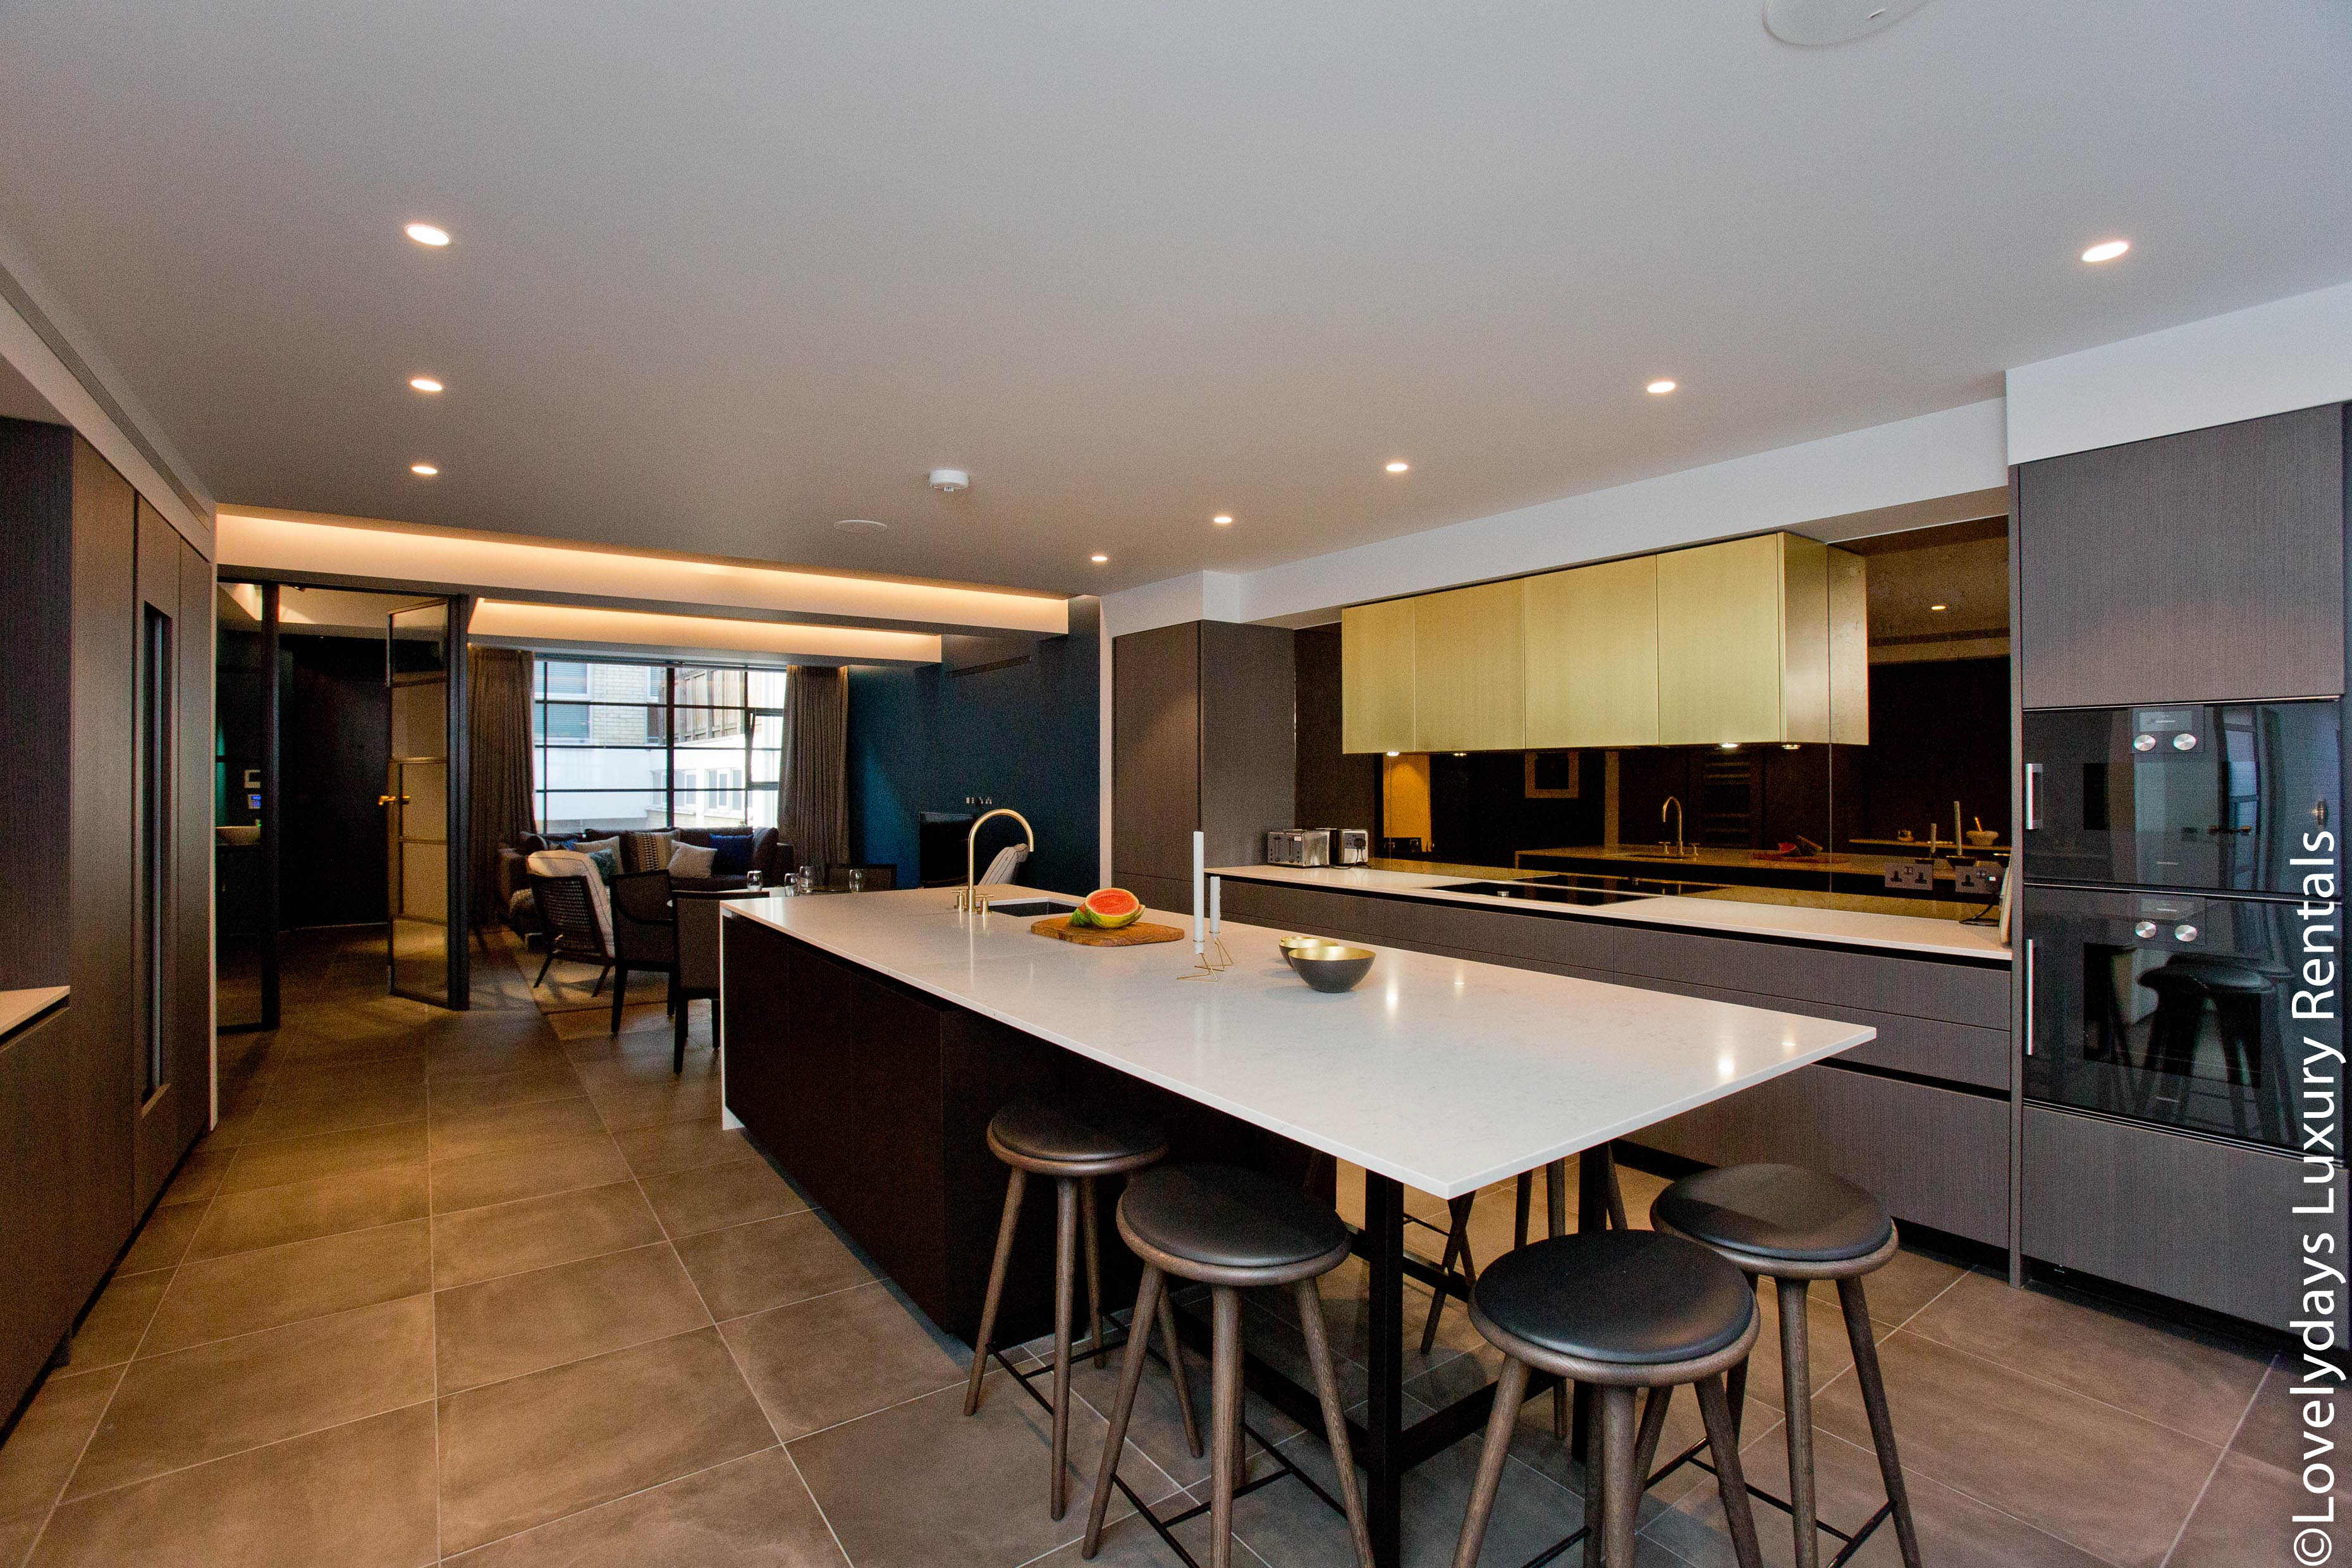 Lovelydays luxury service apartment rental - London - Soho - Royalty Mews III - Partner - 2 bedrooms - 2 bathrooms - Luxury kitchen - 56564c5a2d39 - Lovelydays